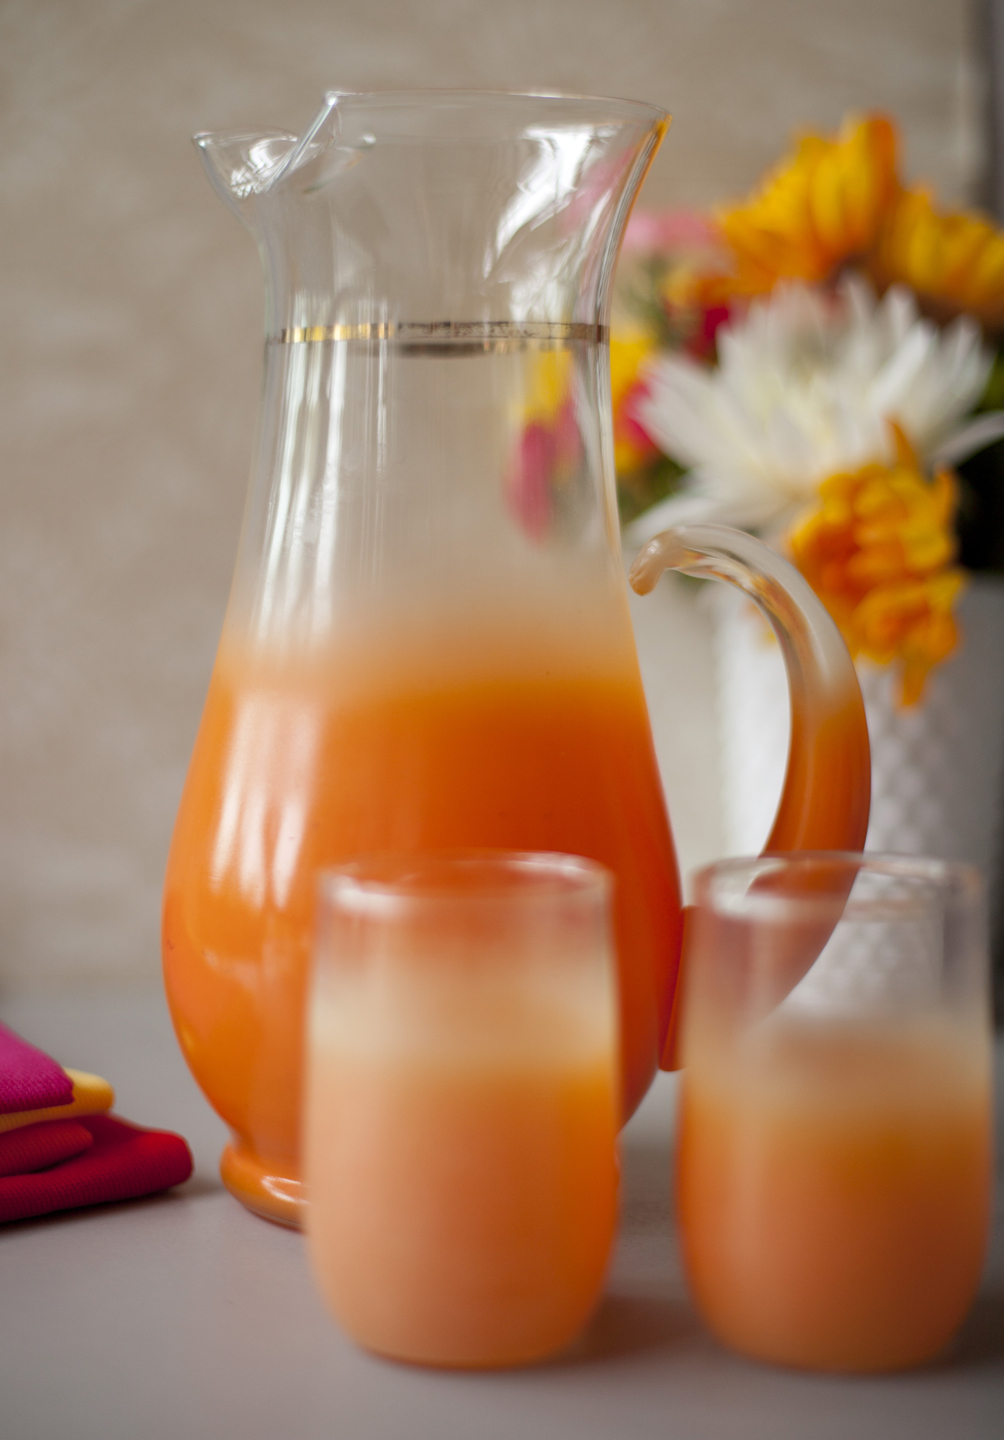 Bright orange Blendo Glassware pitcher and 2 tumblers placed near a vase of flowers.